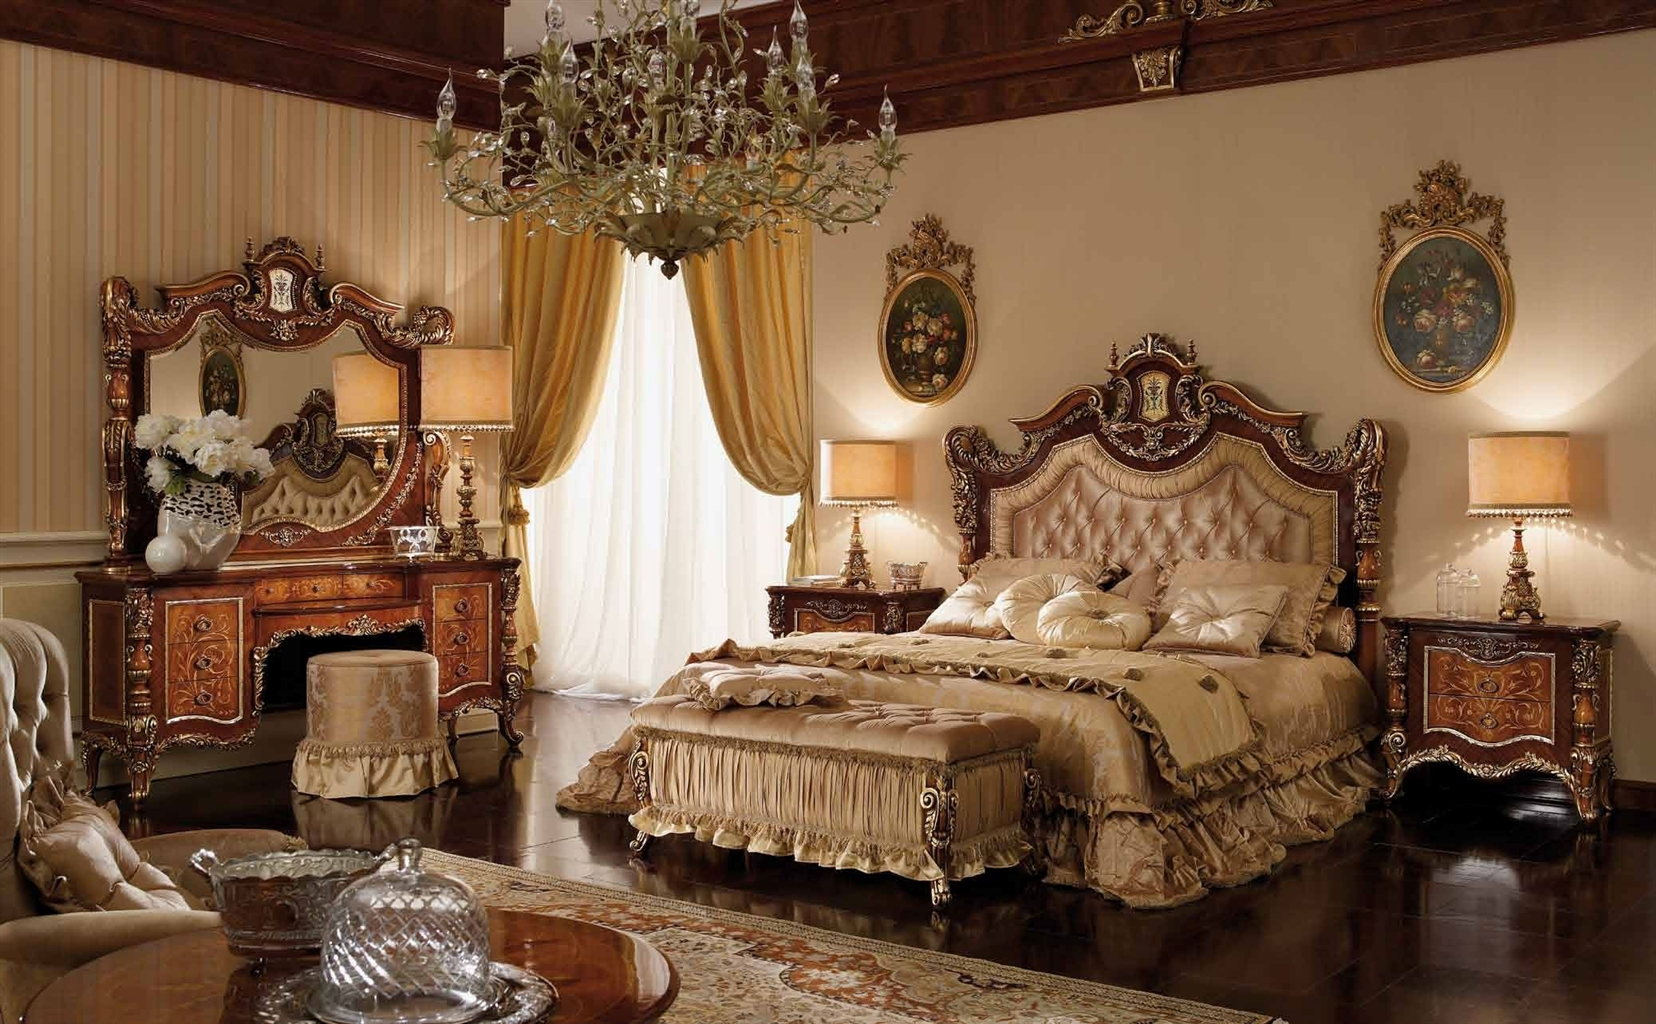 Exceptional Master Bedroom Set With A Tufted Headboard Home Furnishings Luxury Furniture